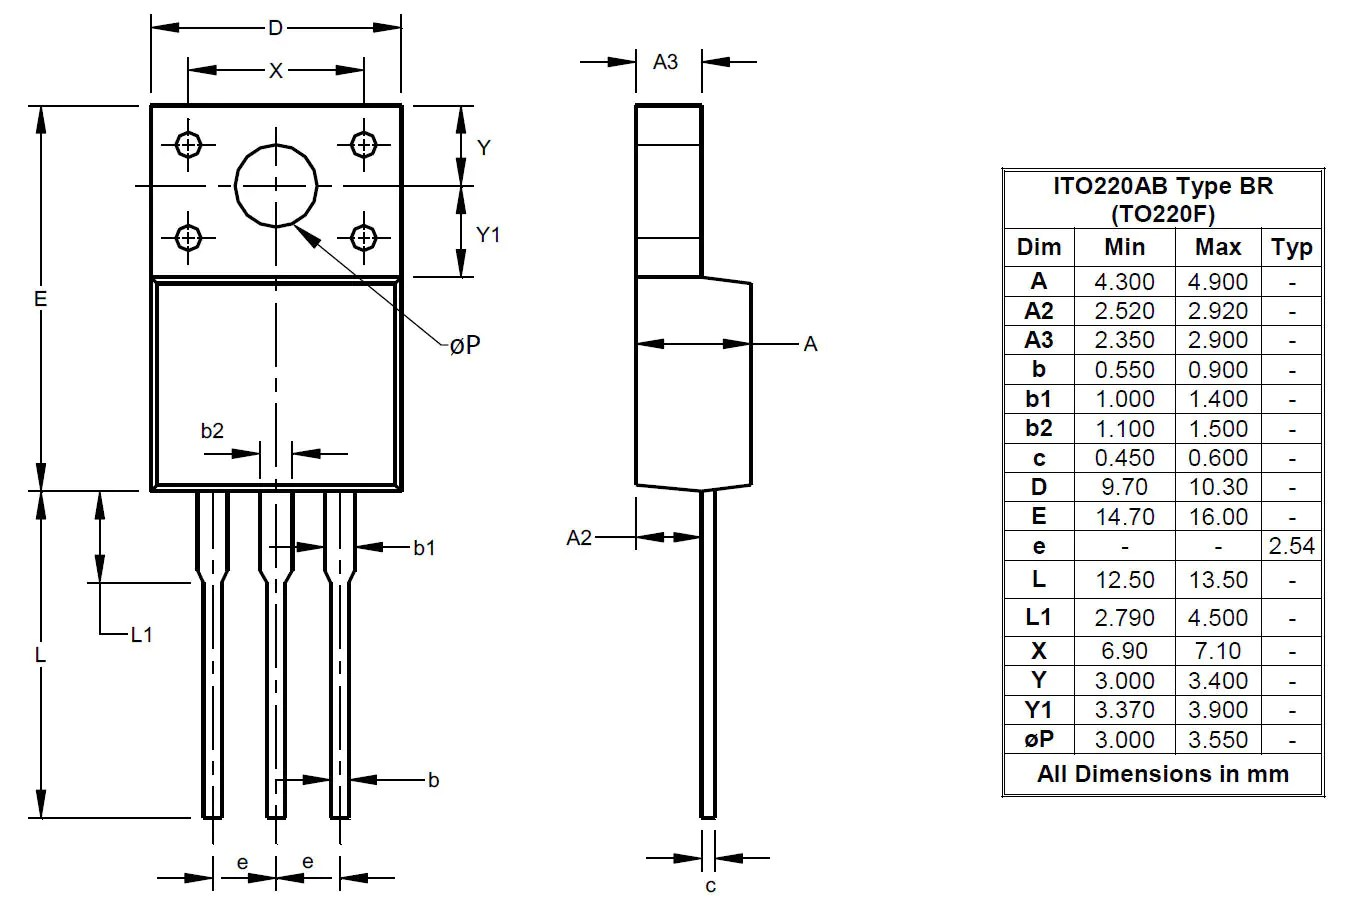 hight resolution of orcad capture auto electrical wiring diagram package outlines and suggest pad layouts